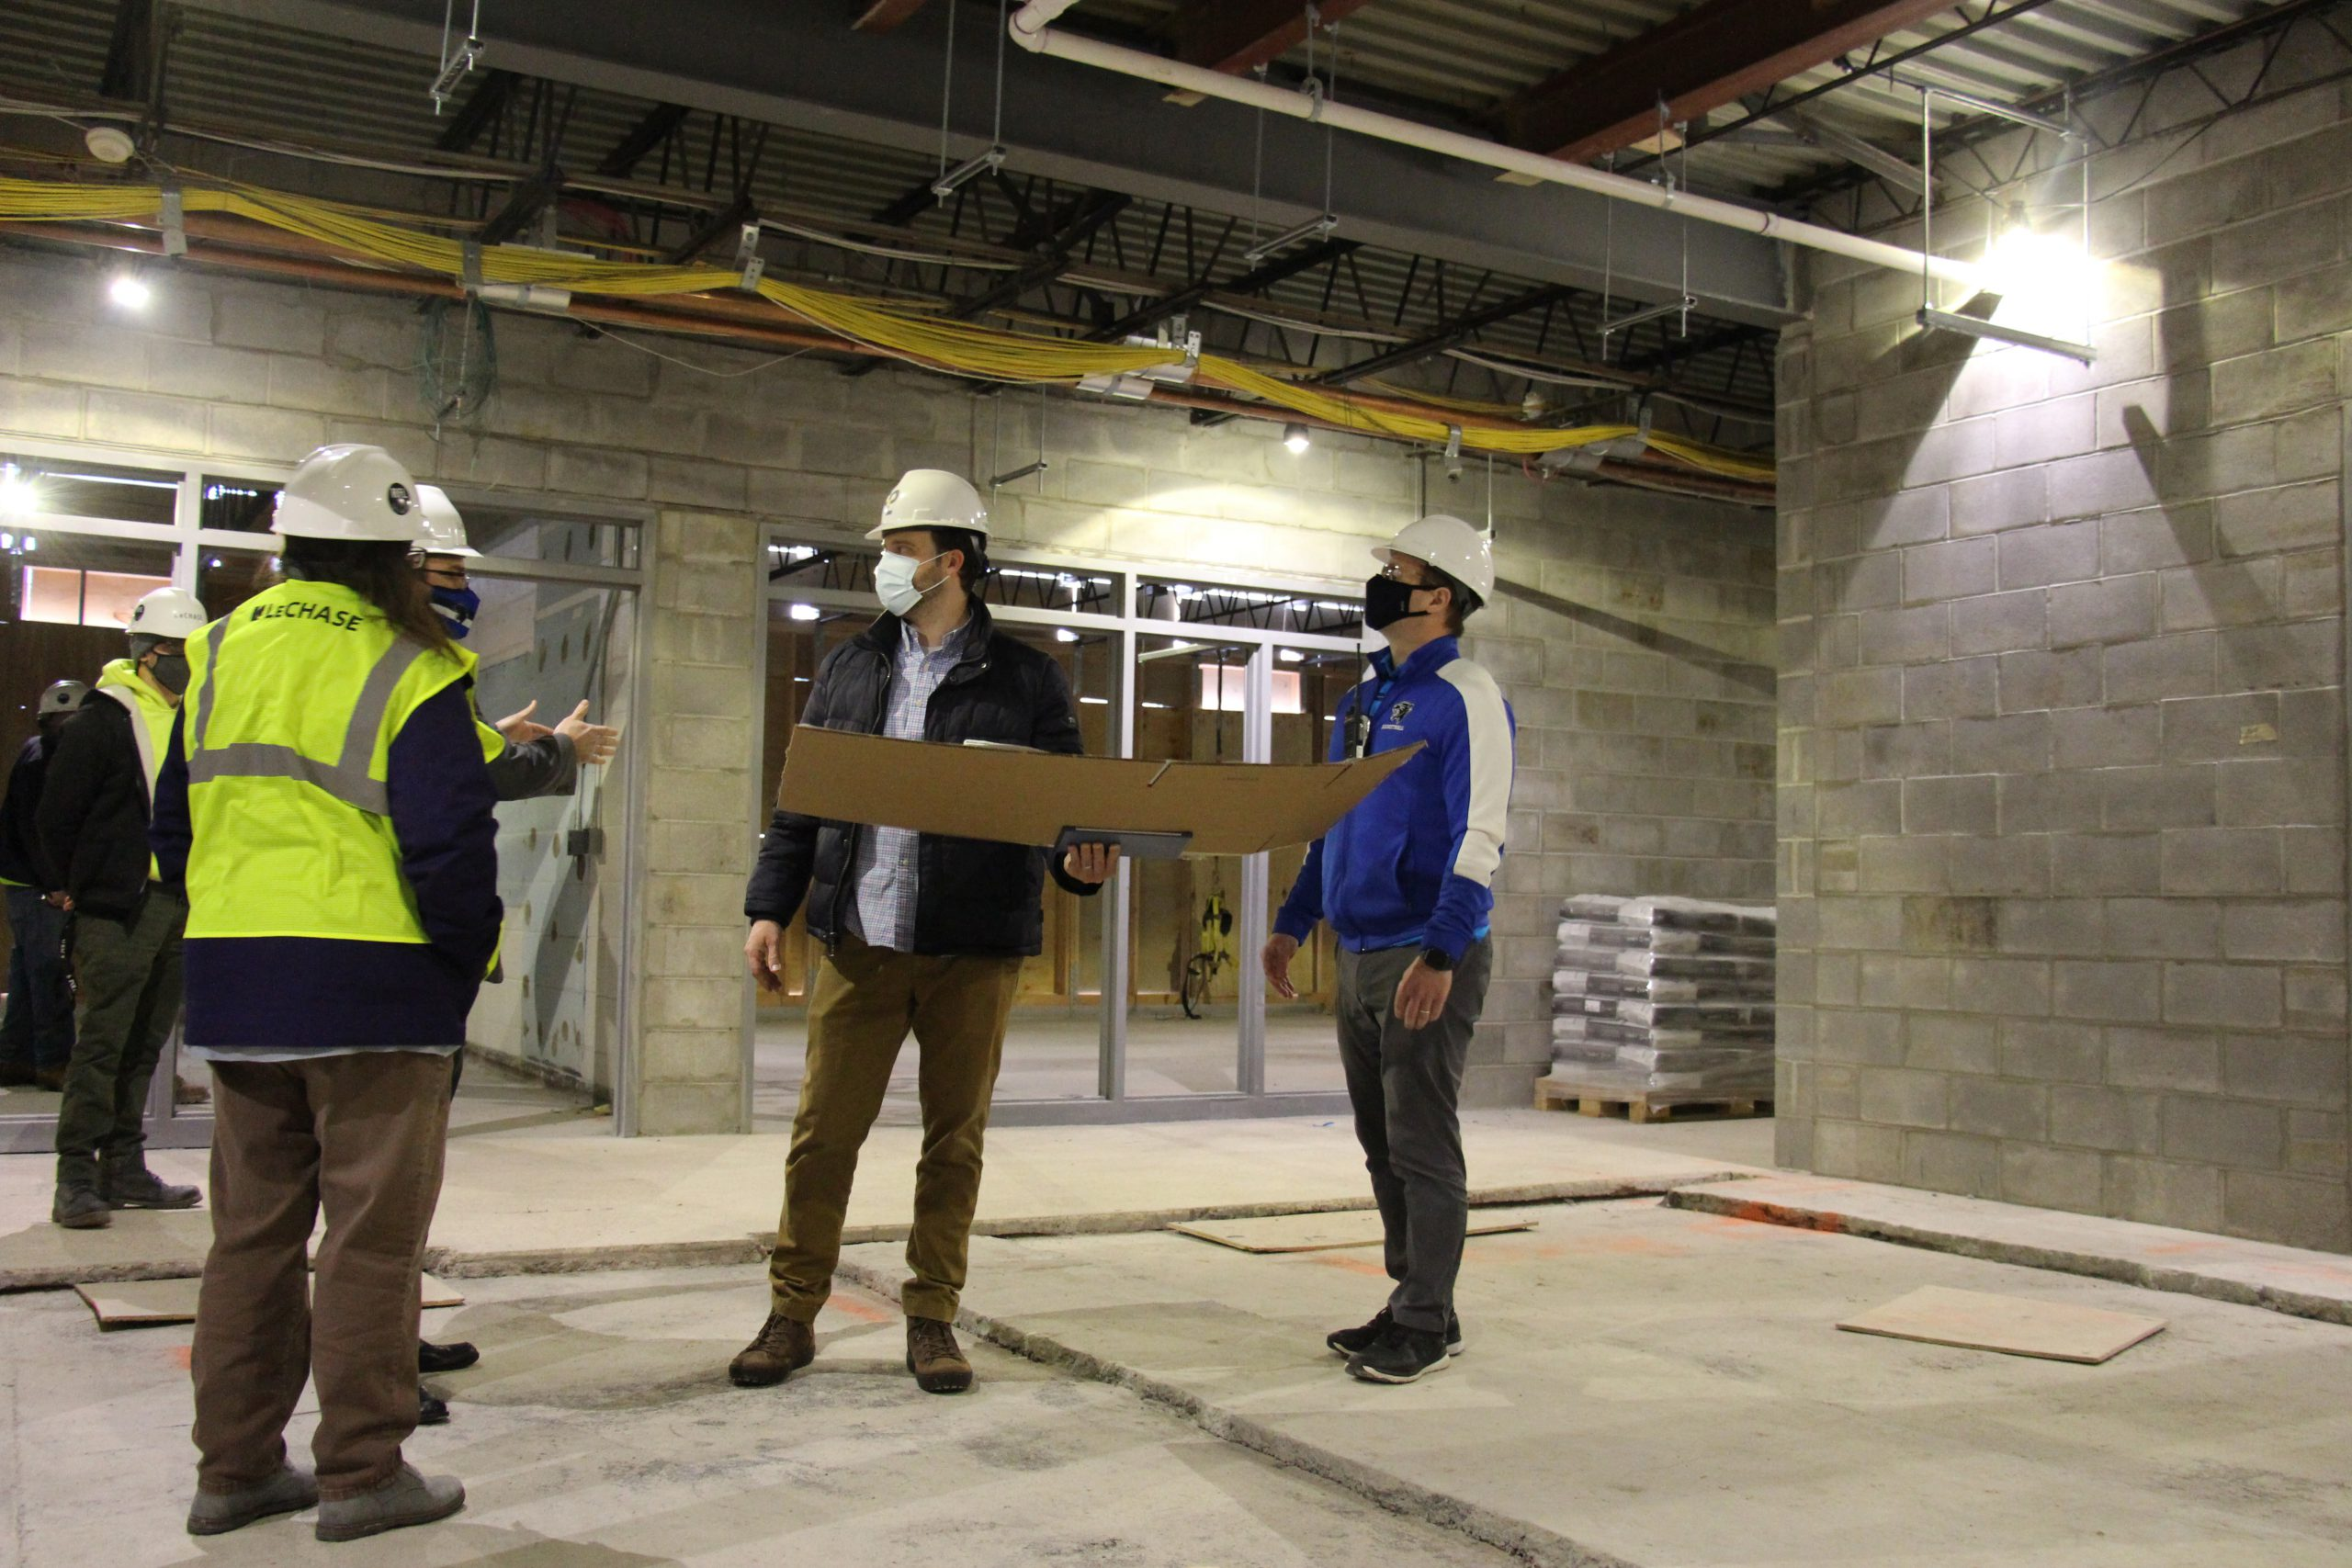 District administrators are in the building construction site and looking up